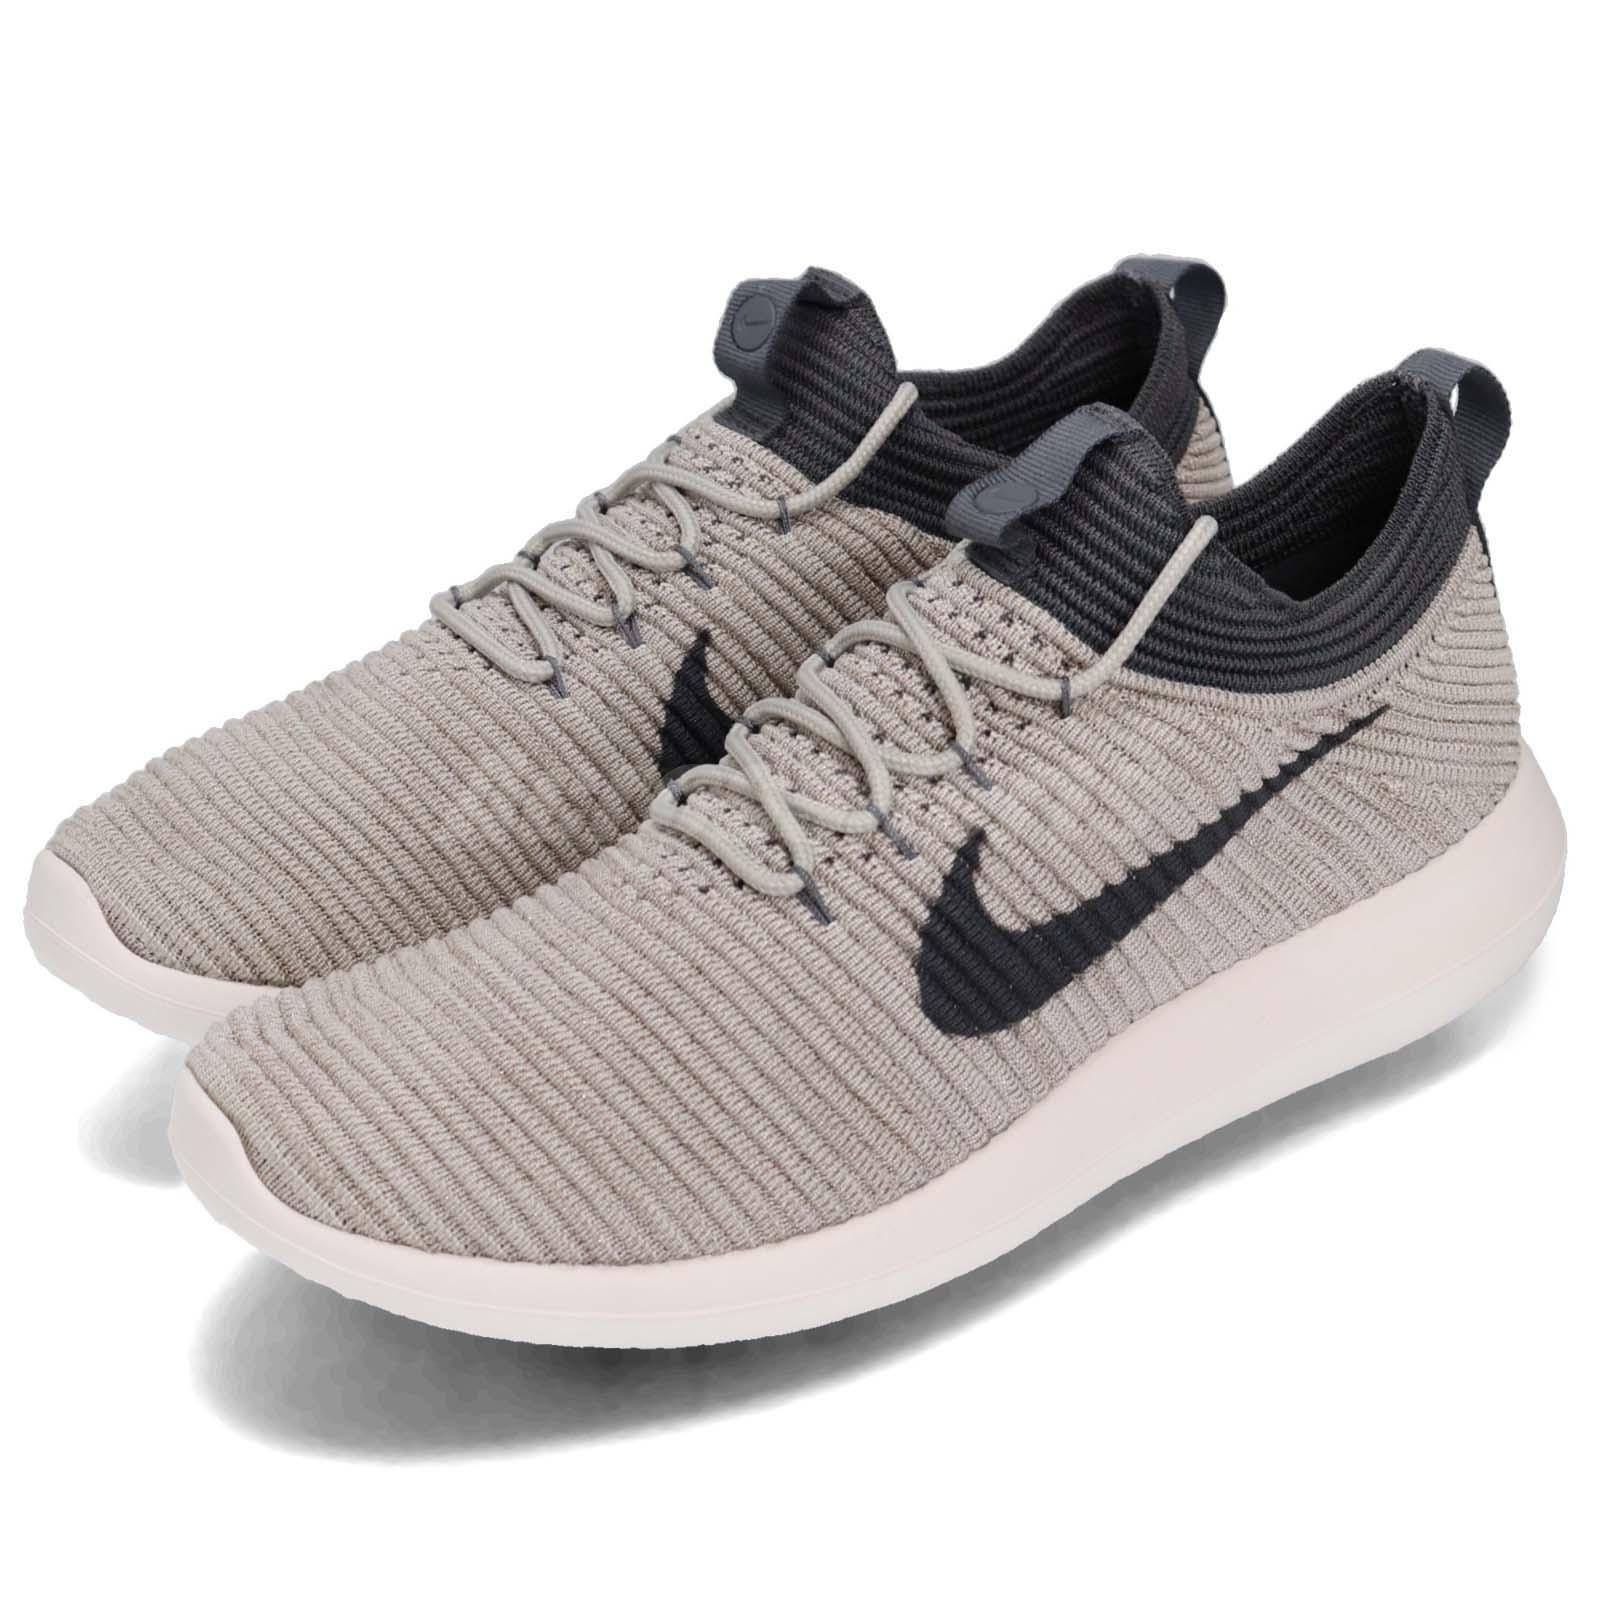 sneakers for cheap e2d22 f2e66 Details about Nike Wmns Roshe Two Flyknit V2 Pale Grey Women Running Shoes  Sneakers 917688-002